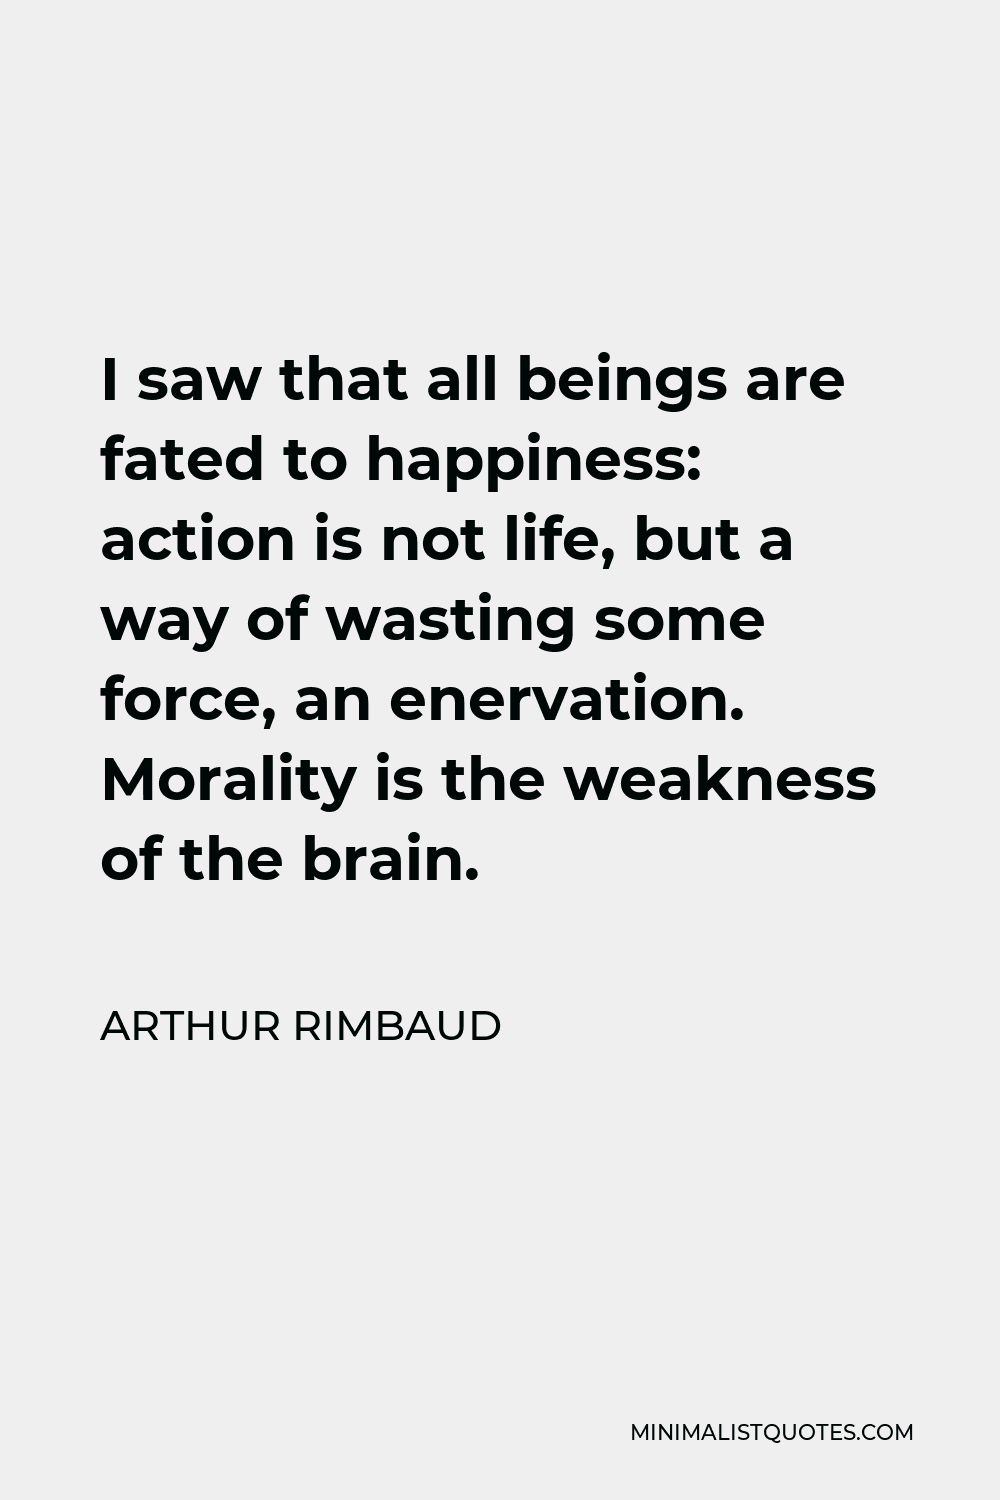 Arthur Rimbaud Quote - I saw that all beings are fated to happiness: action is not life, but a way of wasting some force, an enervation. Morality is the weakness of the brain.